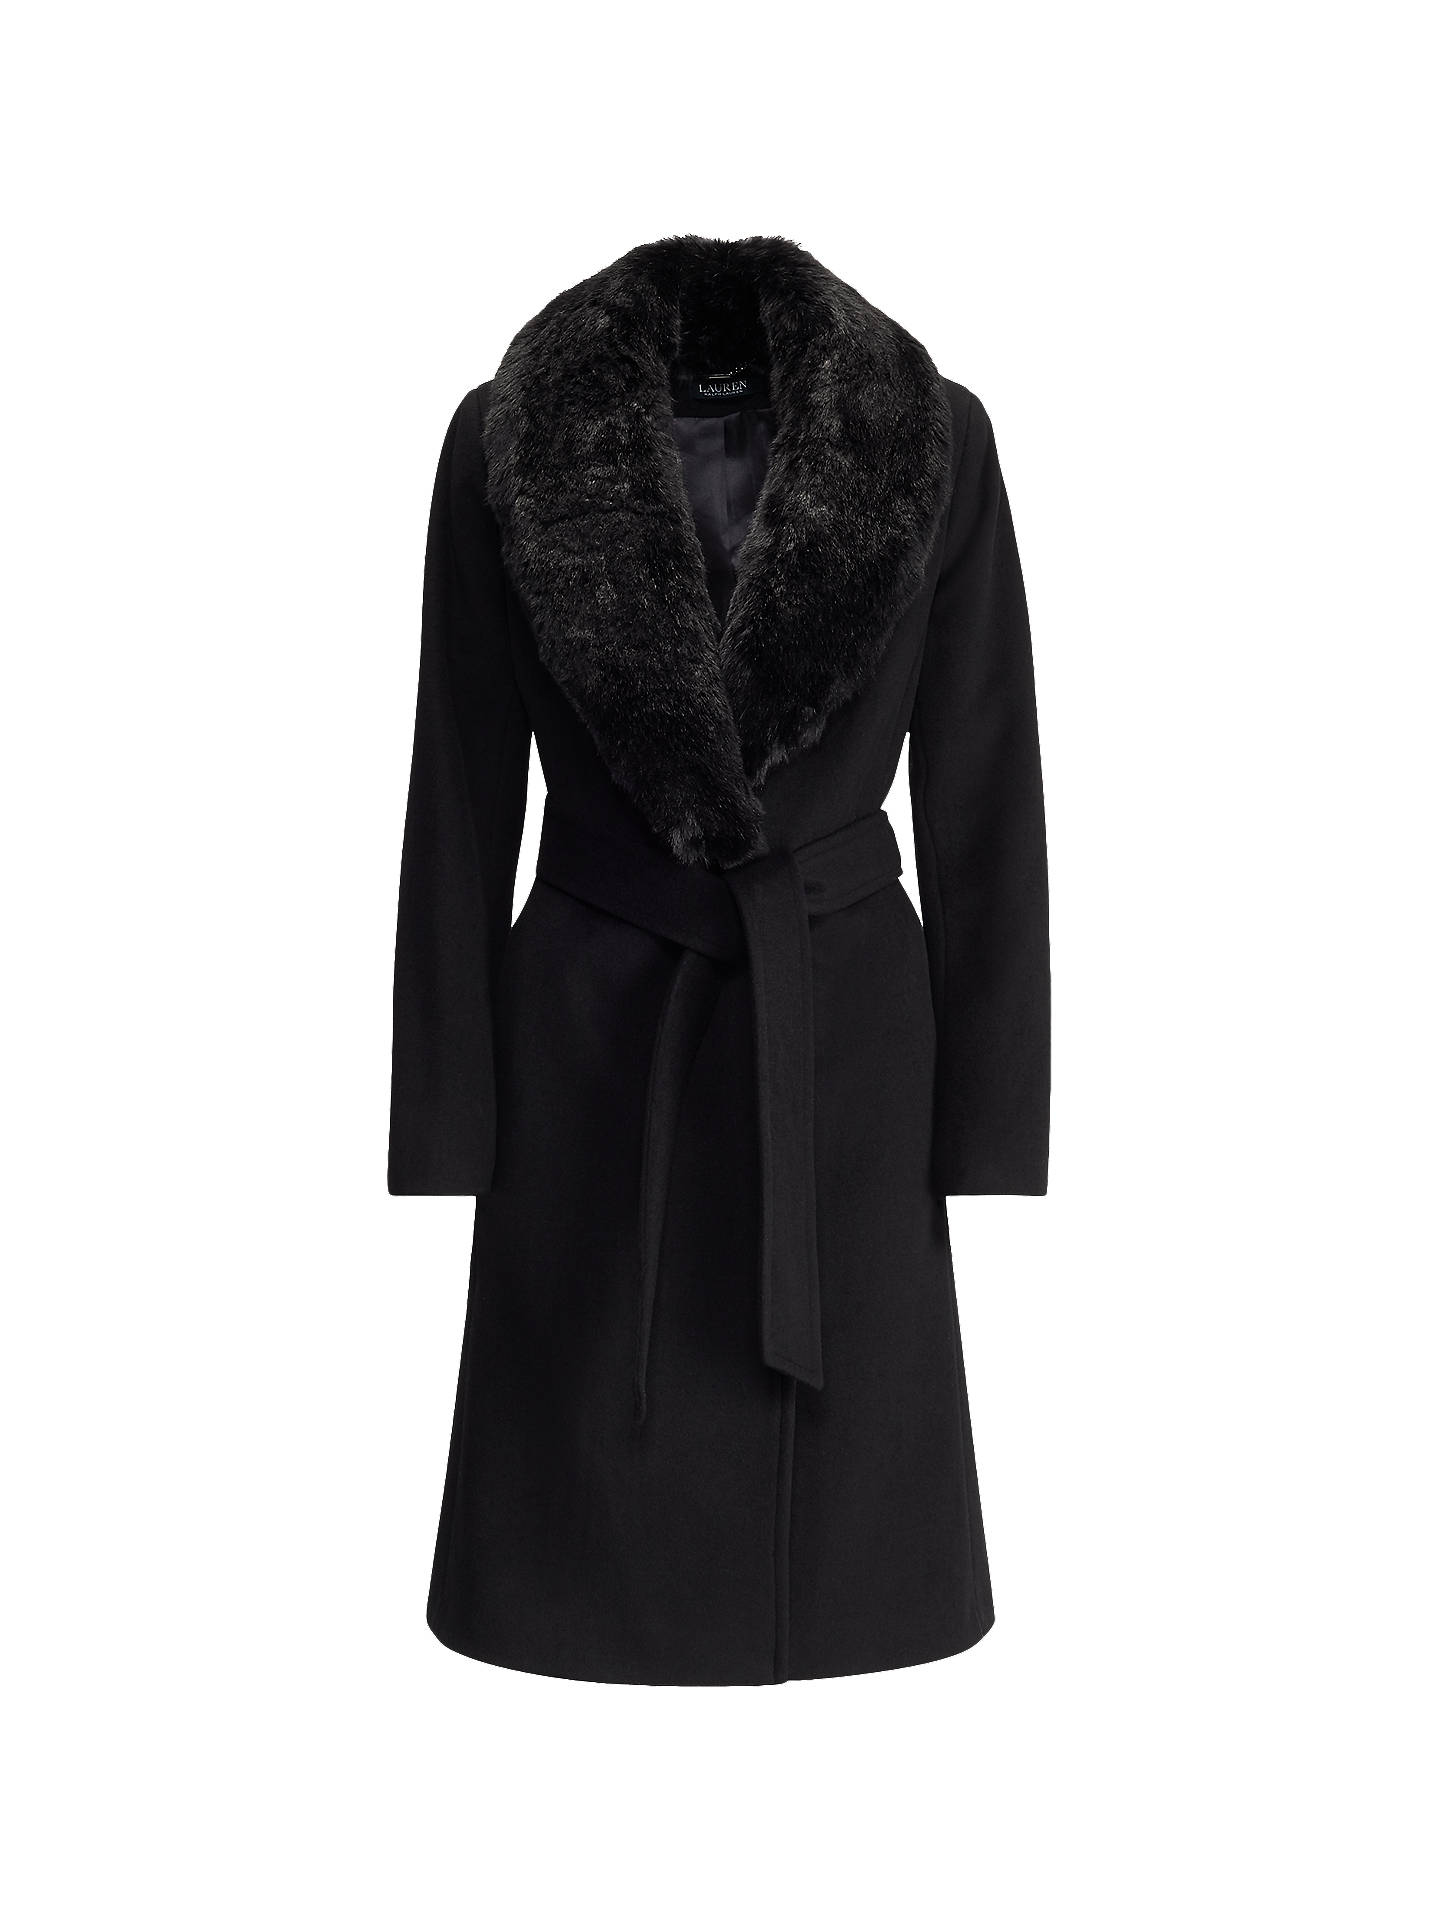 c33903f0d Lauren Ralph Lauren Faux Fur Collar Wool Blend Coat, Black at John ...